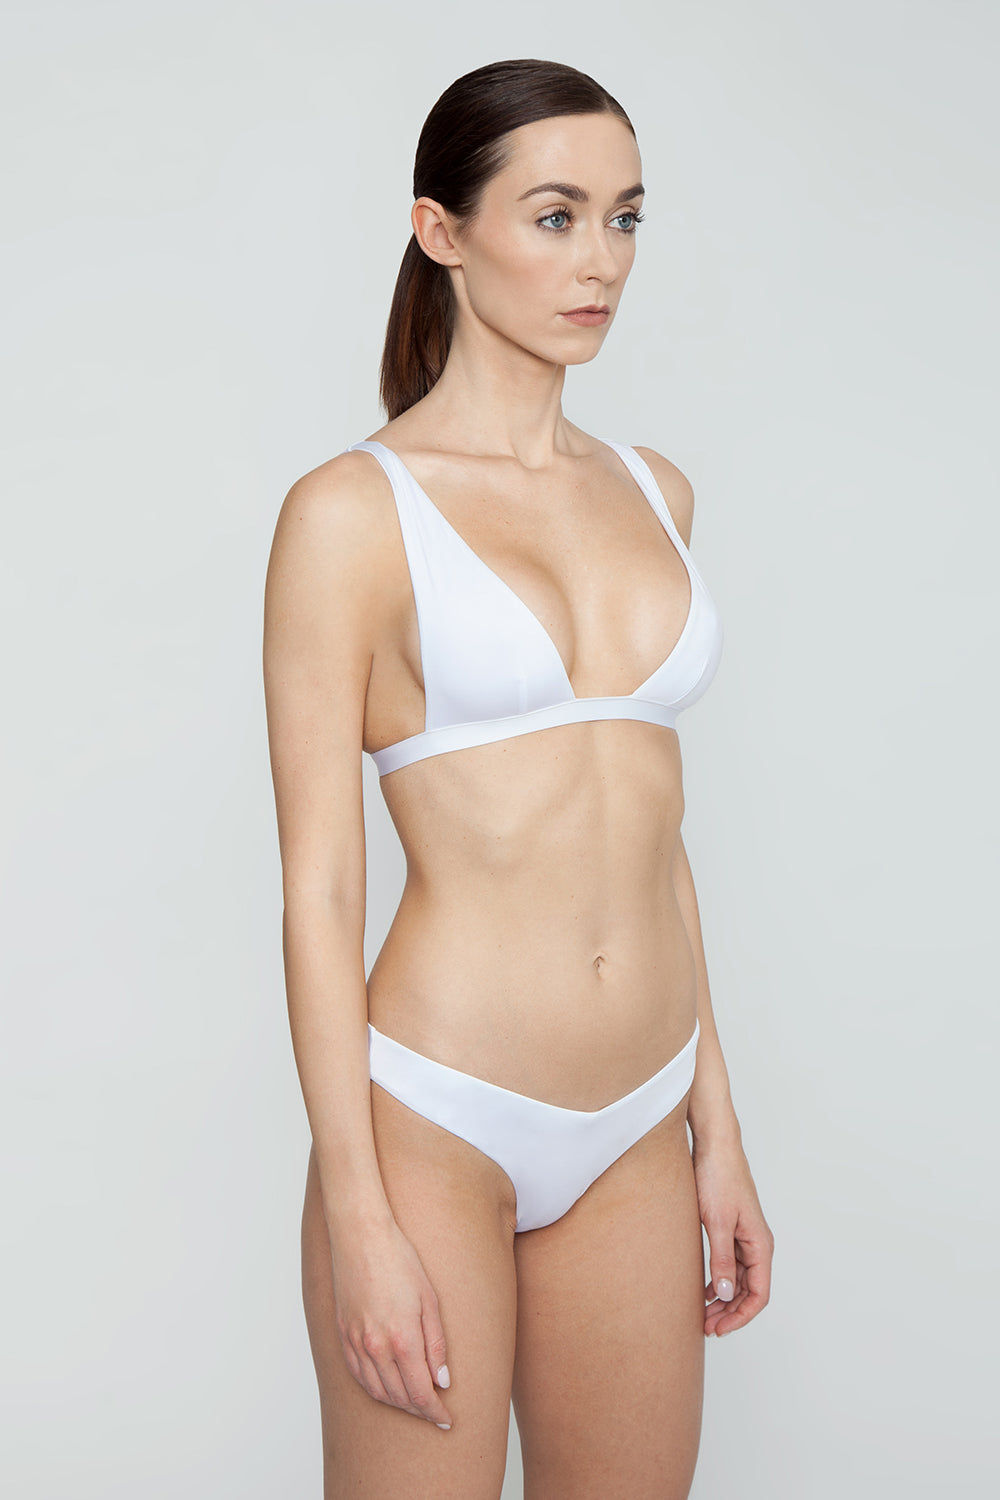 MONICA HANSEN BEACHWEAR Babe Watch Long Triangle Bikini Top - White Bikini Top | White| Monica Hansen Beachwear Babe Watch Long Triangle Bikini Top - White Features:  Plunging U-neckline Long triangle top Small nickel colored metal clasp in back Double fabric on the inside instead of lining Italian fabric 85% Nylon 15% Elastane Manufactured in Italy Hand wash cold.  Dry Flat Side View